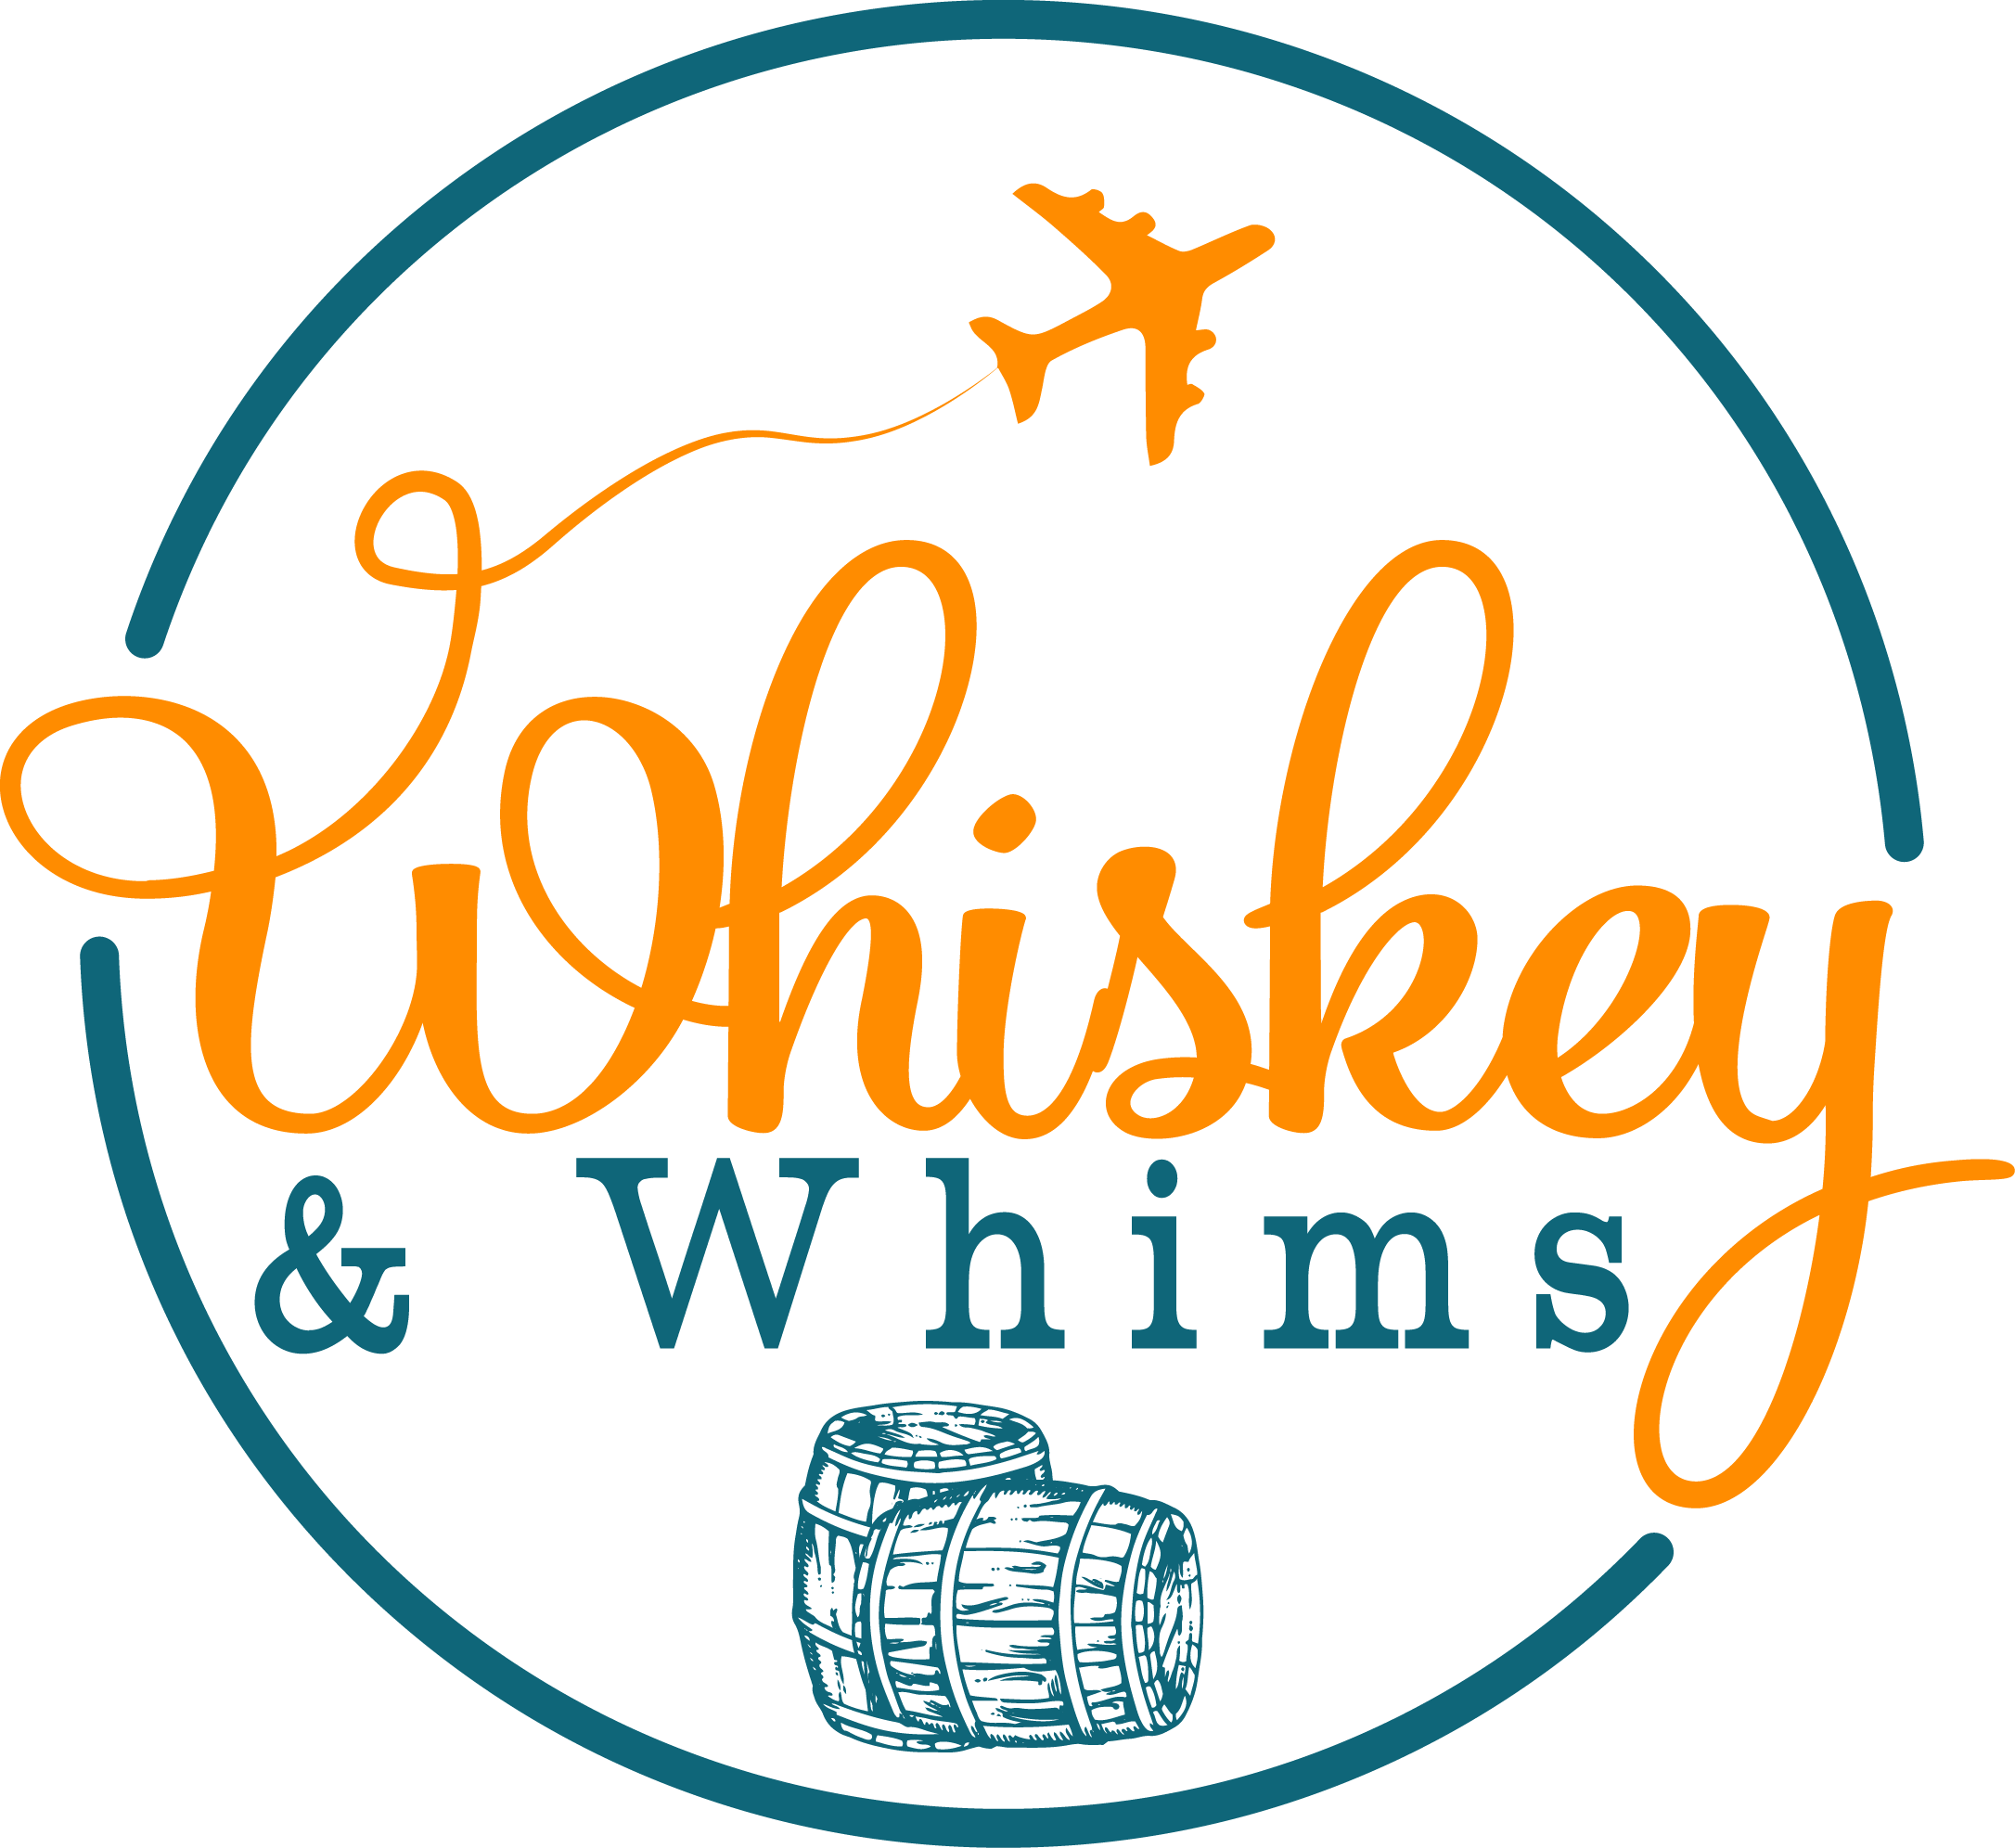 WHISKEY & WHIMS